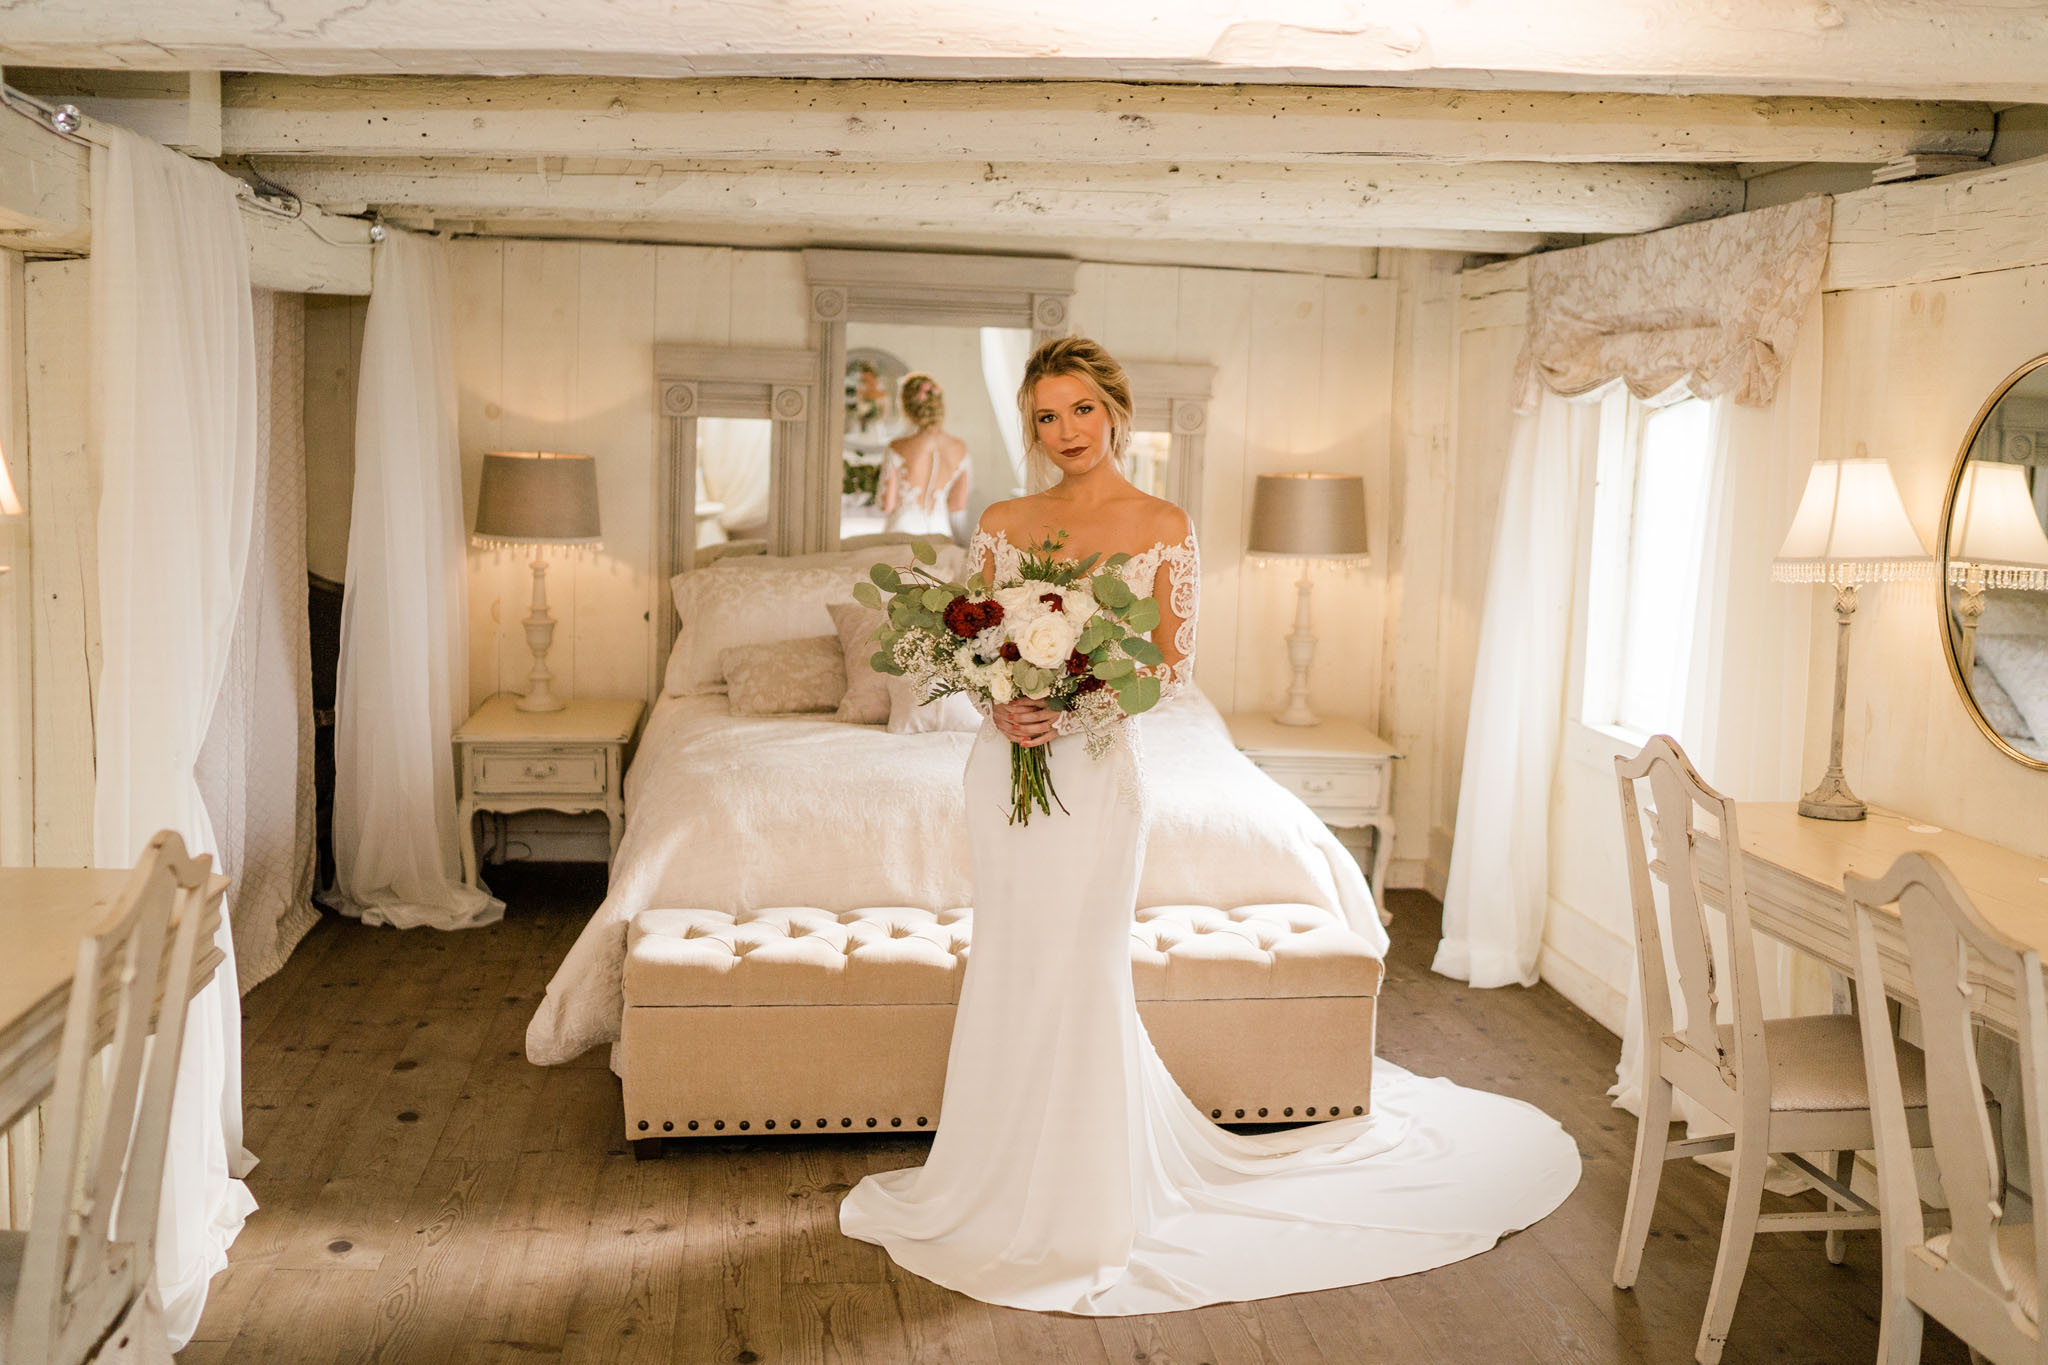 Gorgeous bride in bridal sweet getting ready for her big day.